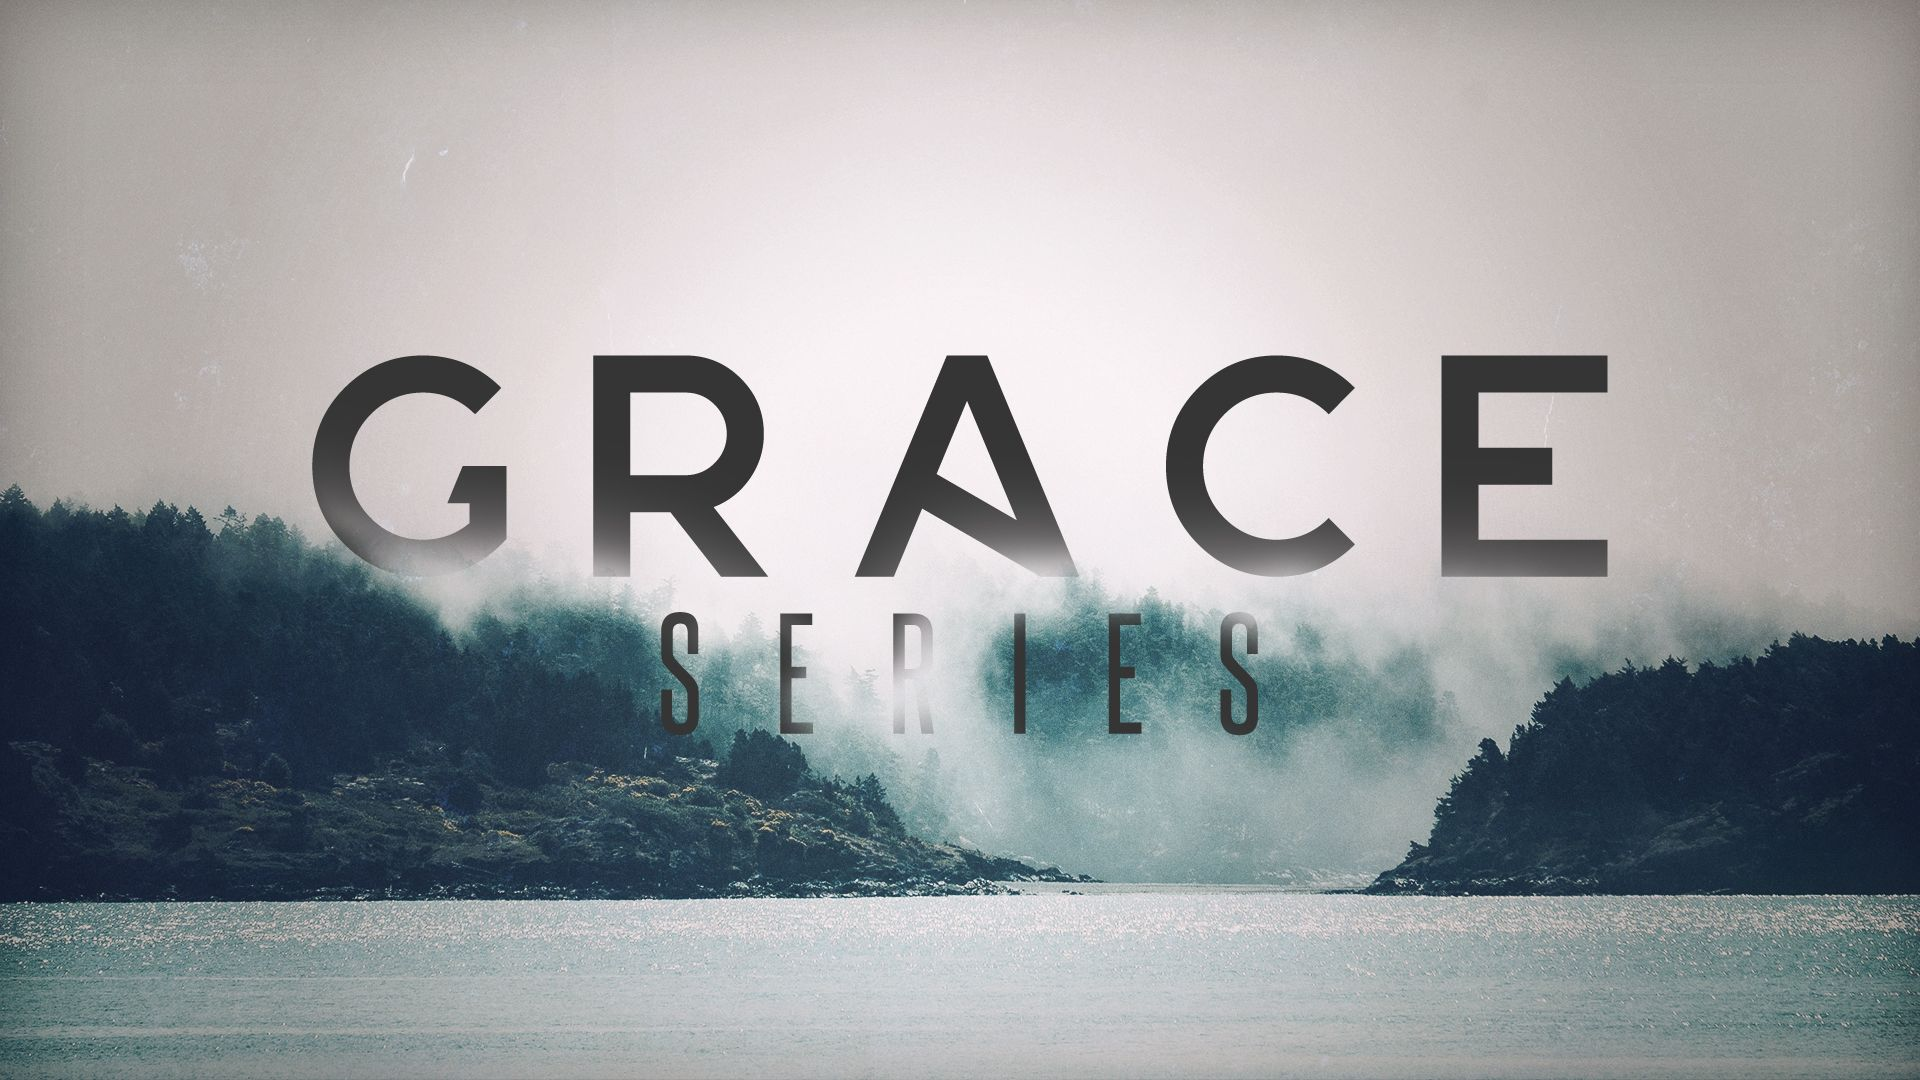 GRACE sermon series design finding God in the storm   Church